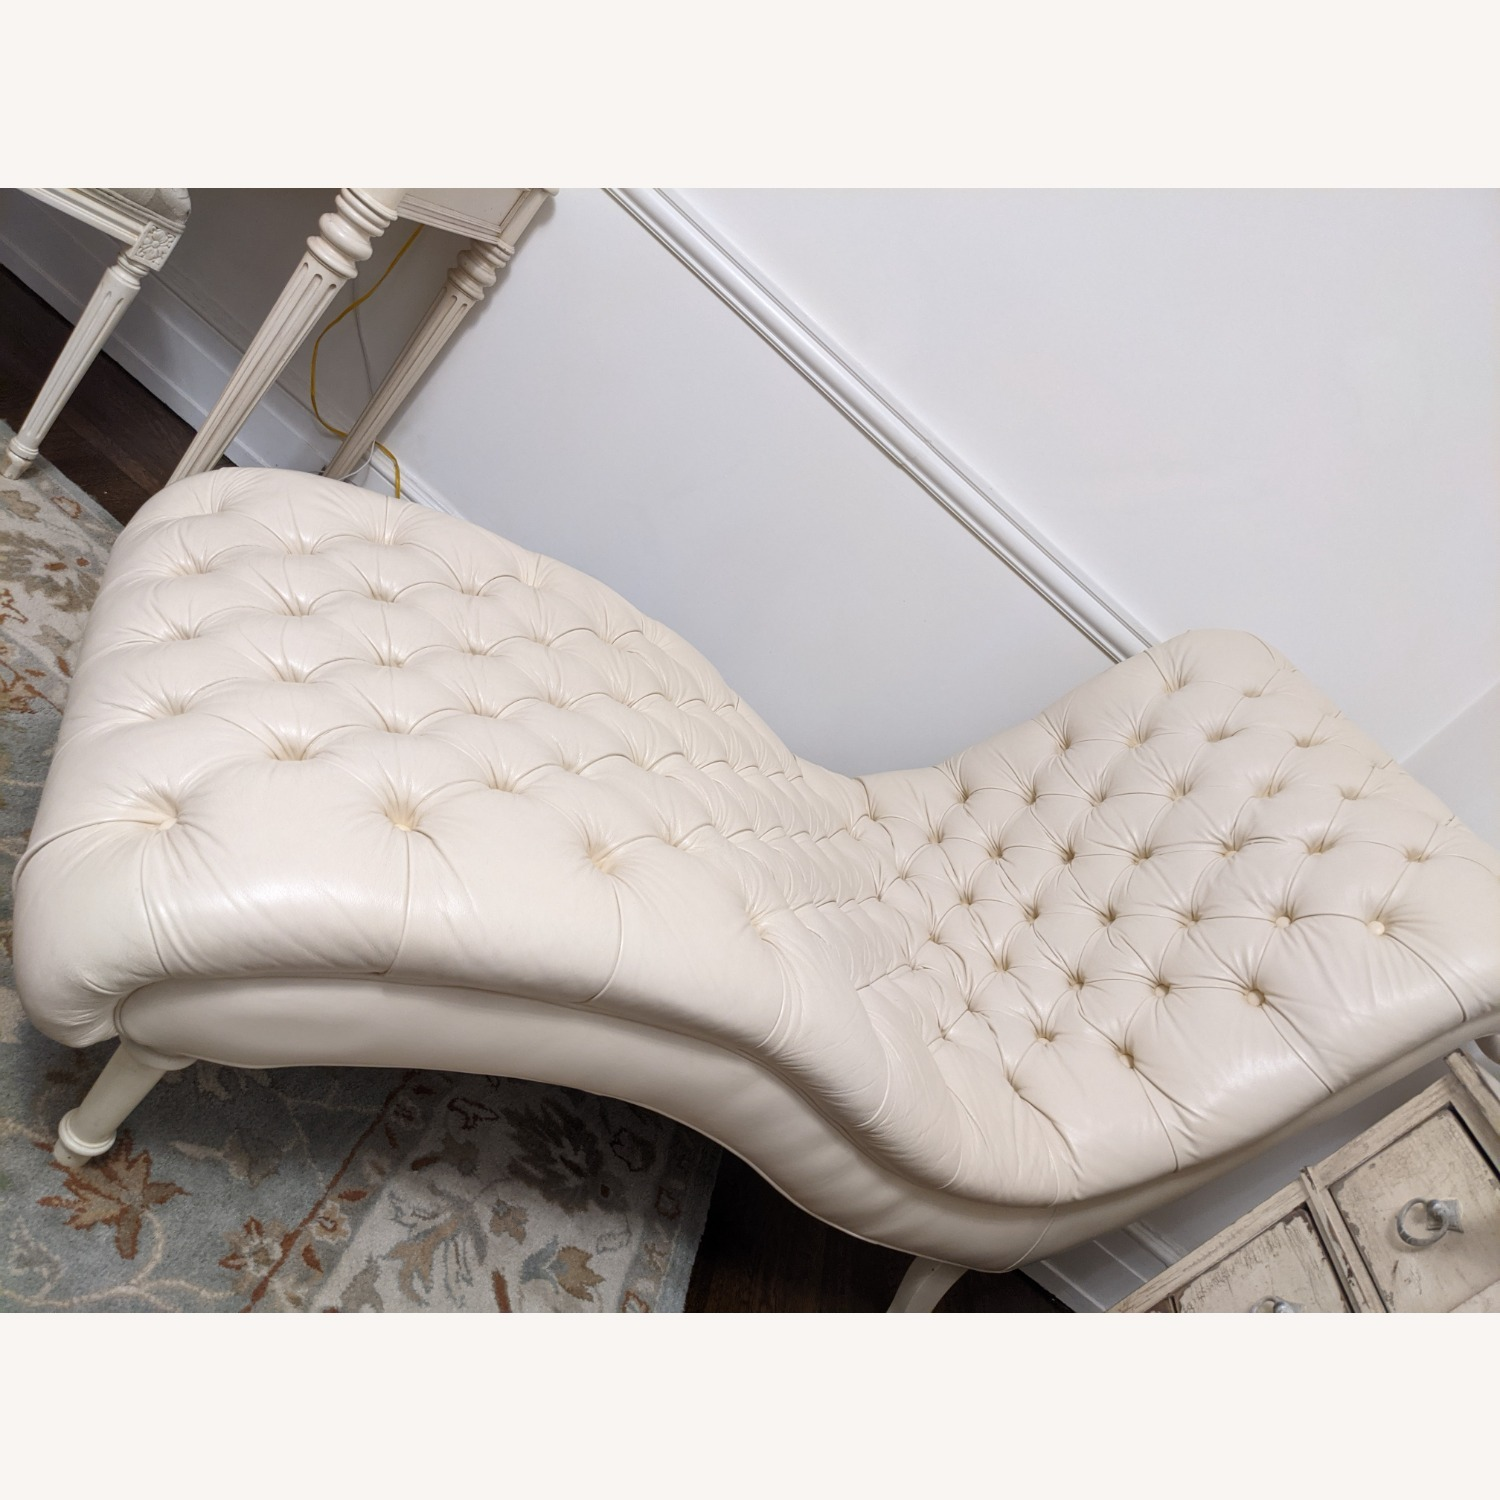 Ethan Allen Leather Chaise Long - image-11